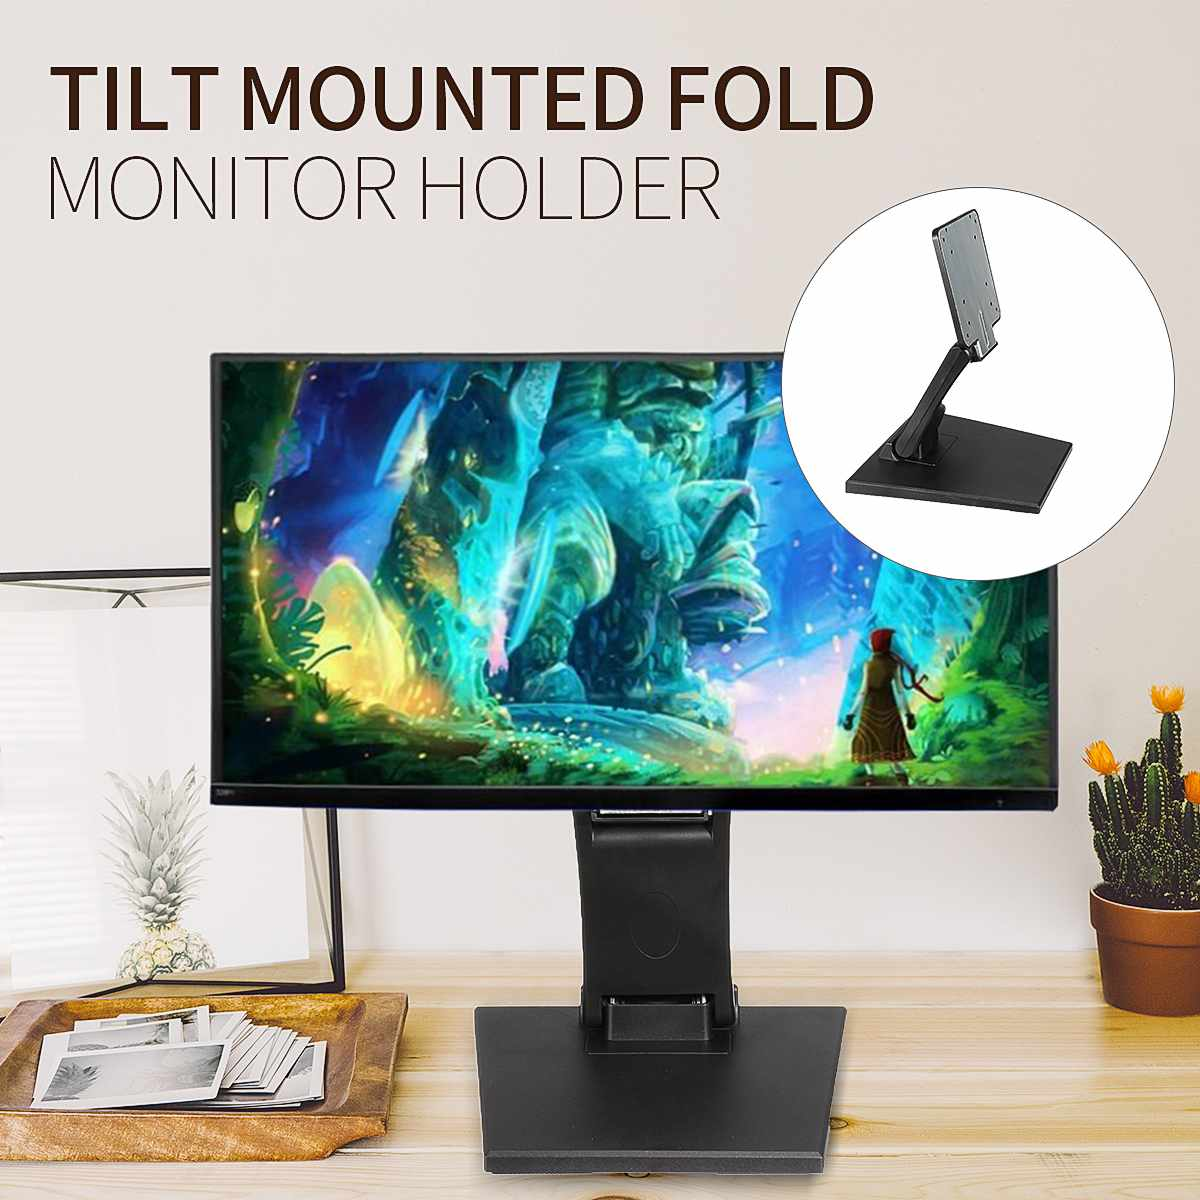 1Pcs Plastic Tilt Mounted Fold Monitor Holder Rotated For 10 27 Inch LCD Display Screen Stand